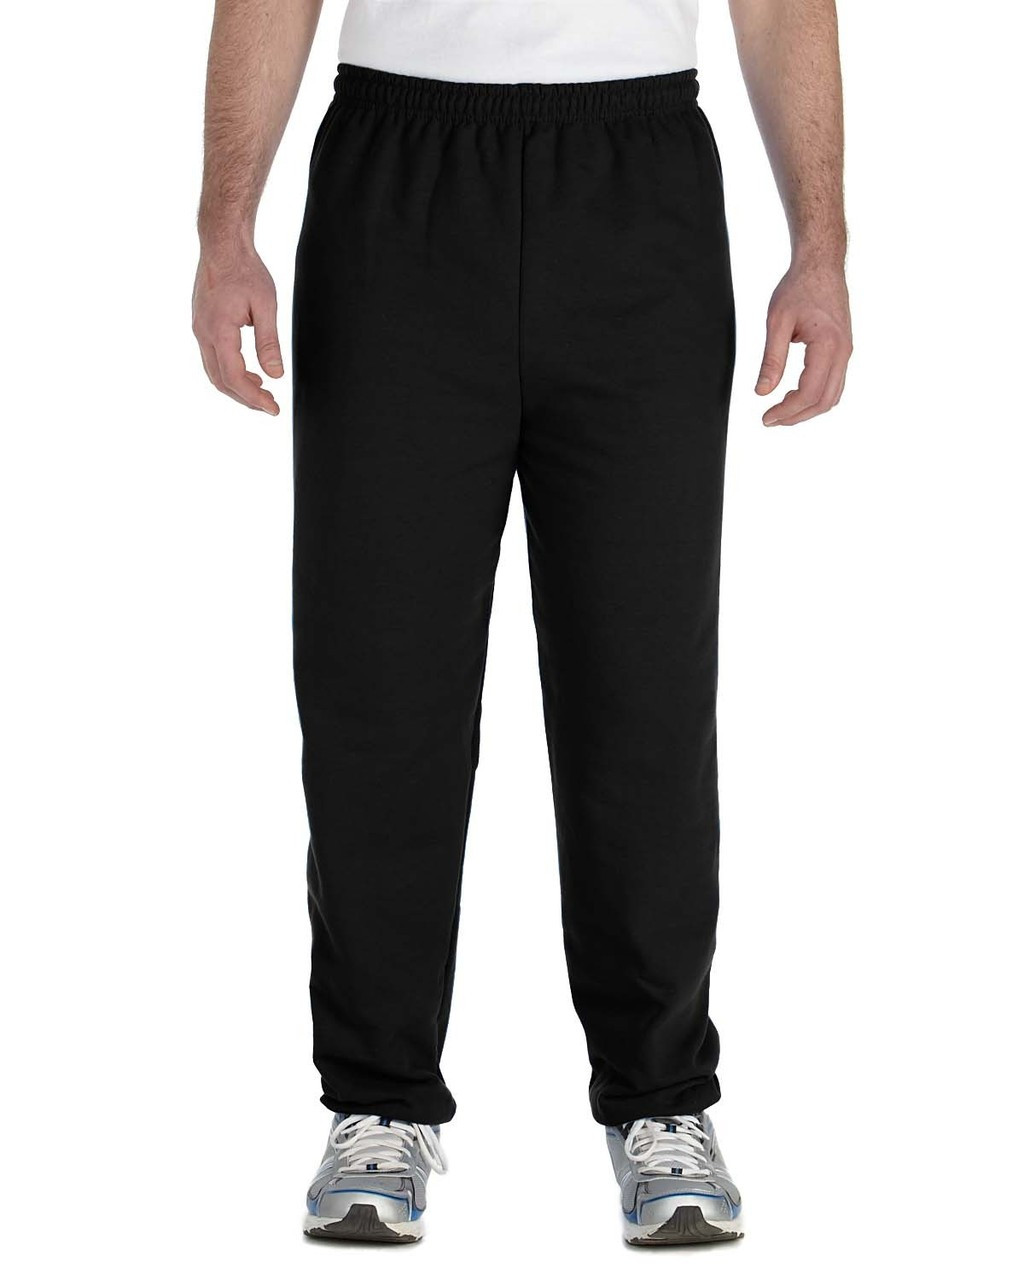 Black - G182 Gildan Heavy Blend Sweatpants | Blankclothing.ca